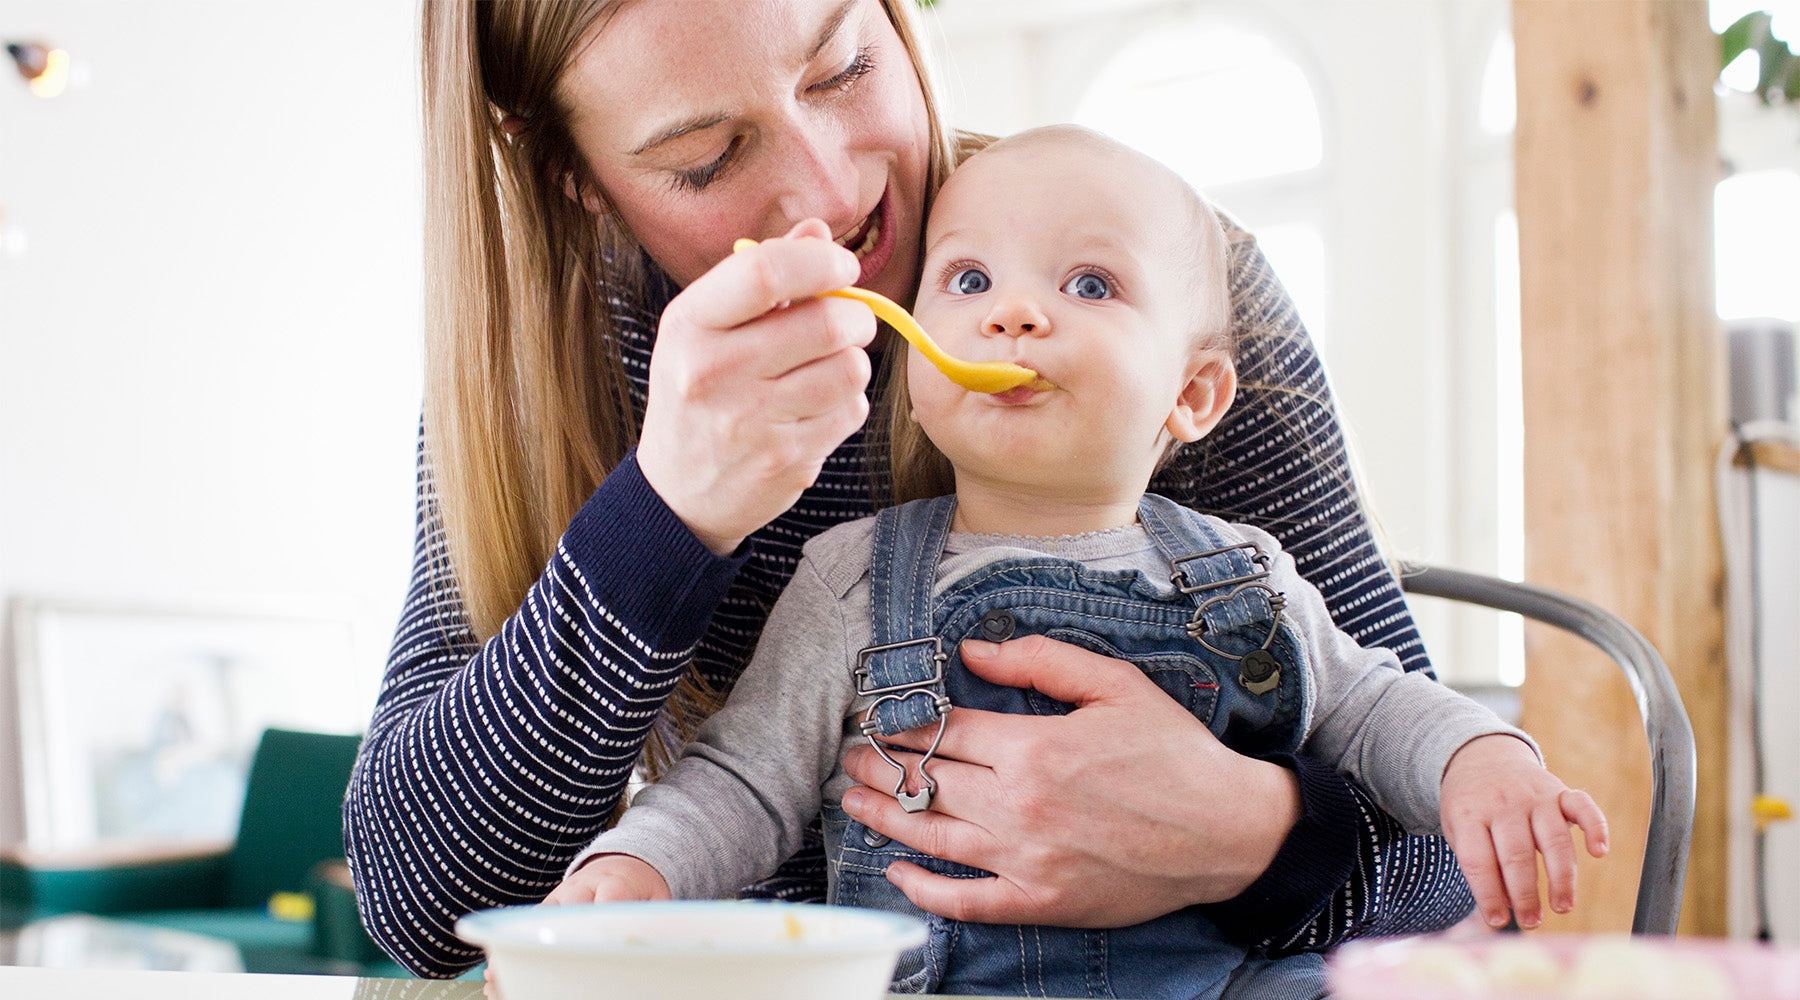 Feeding Baby: The New Guide to Introducing Solids